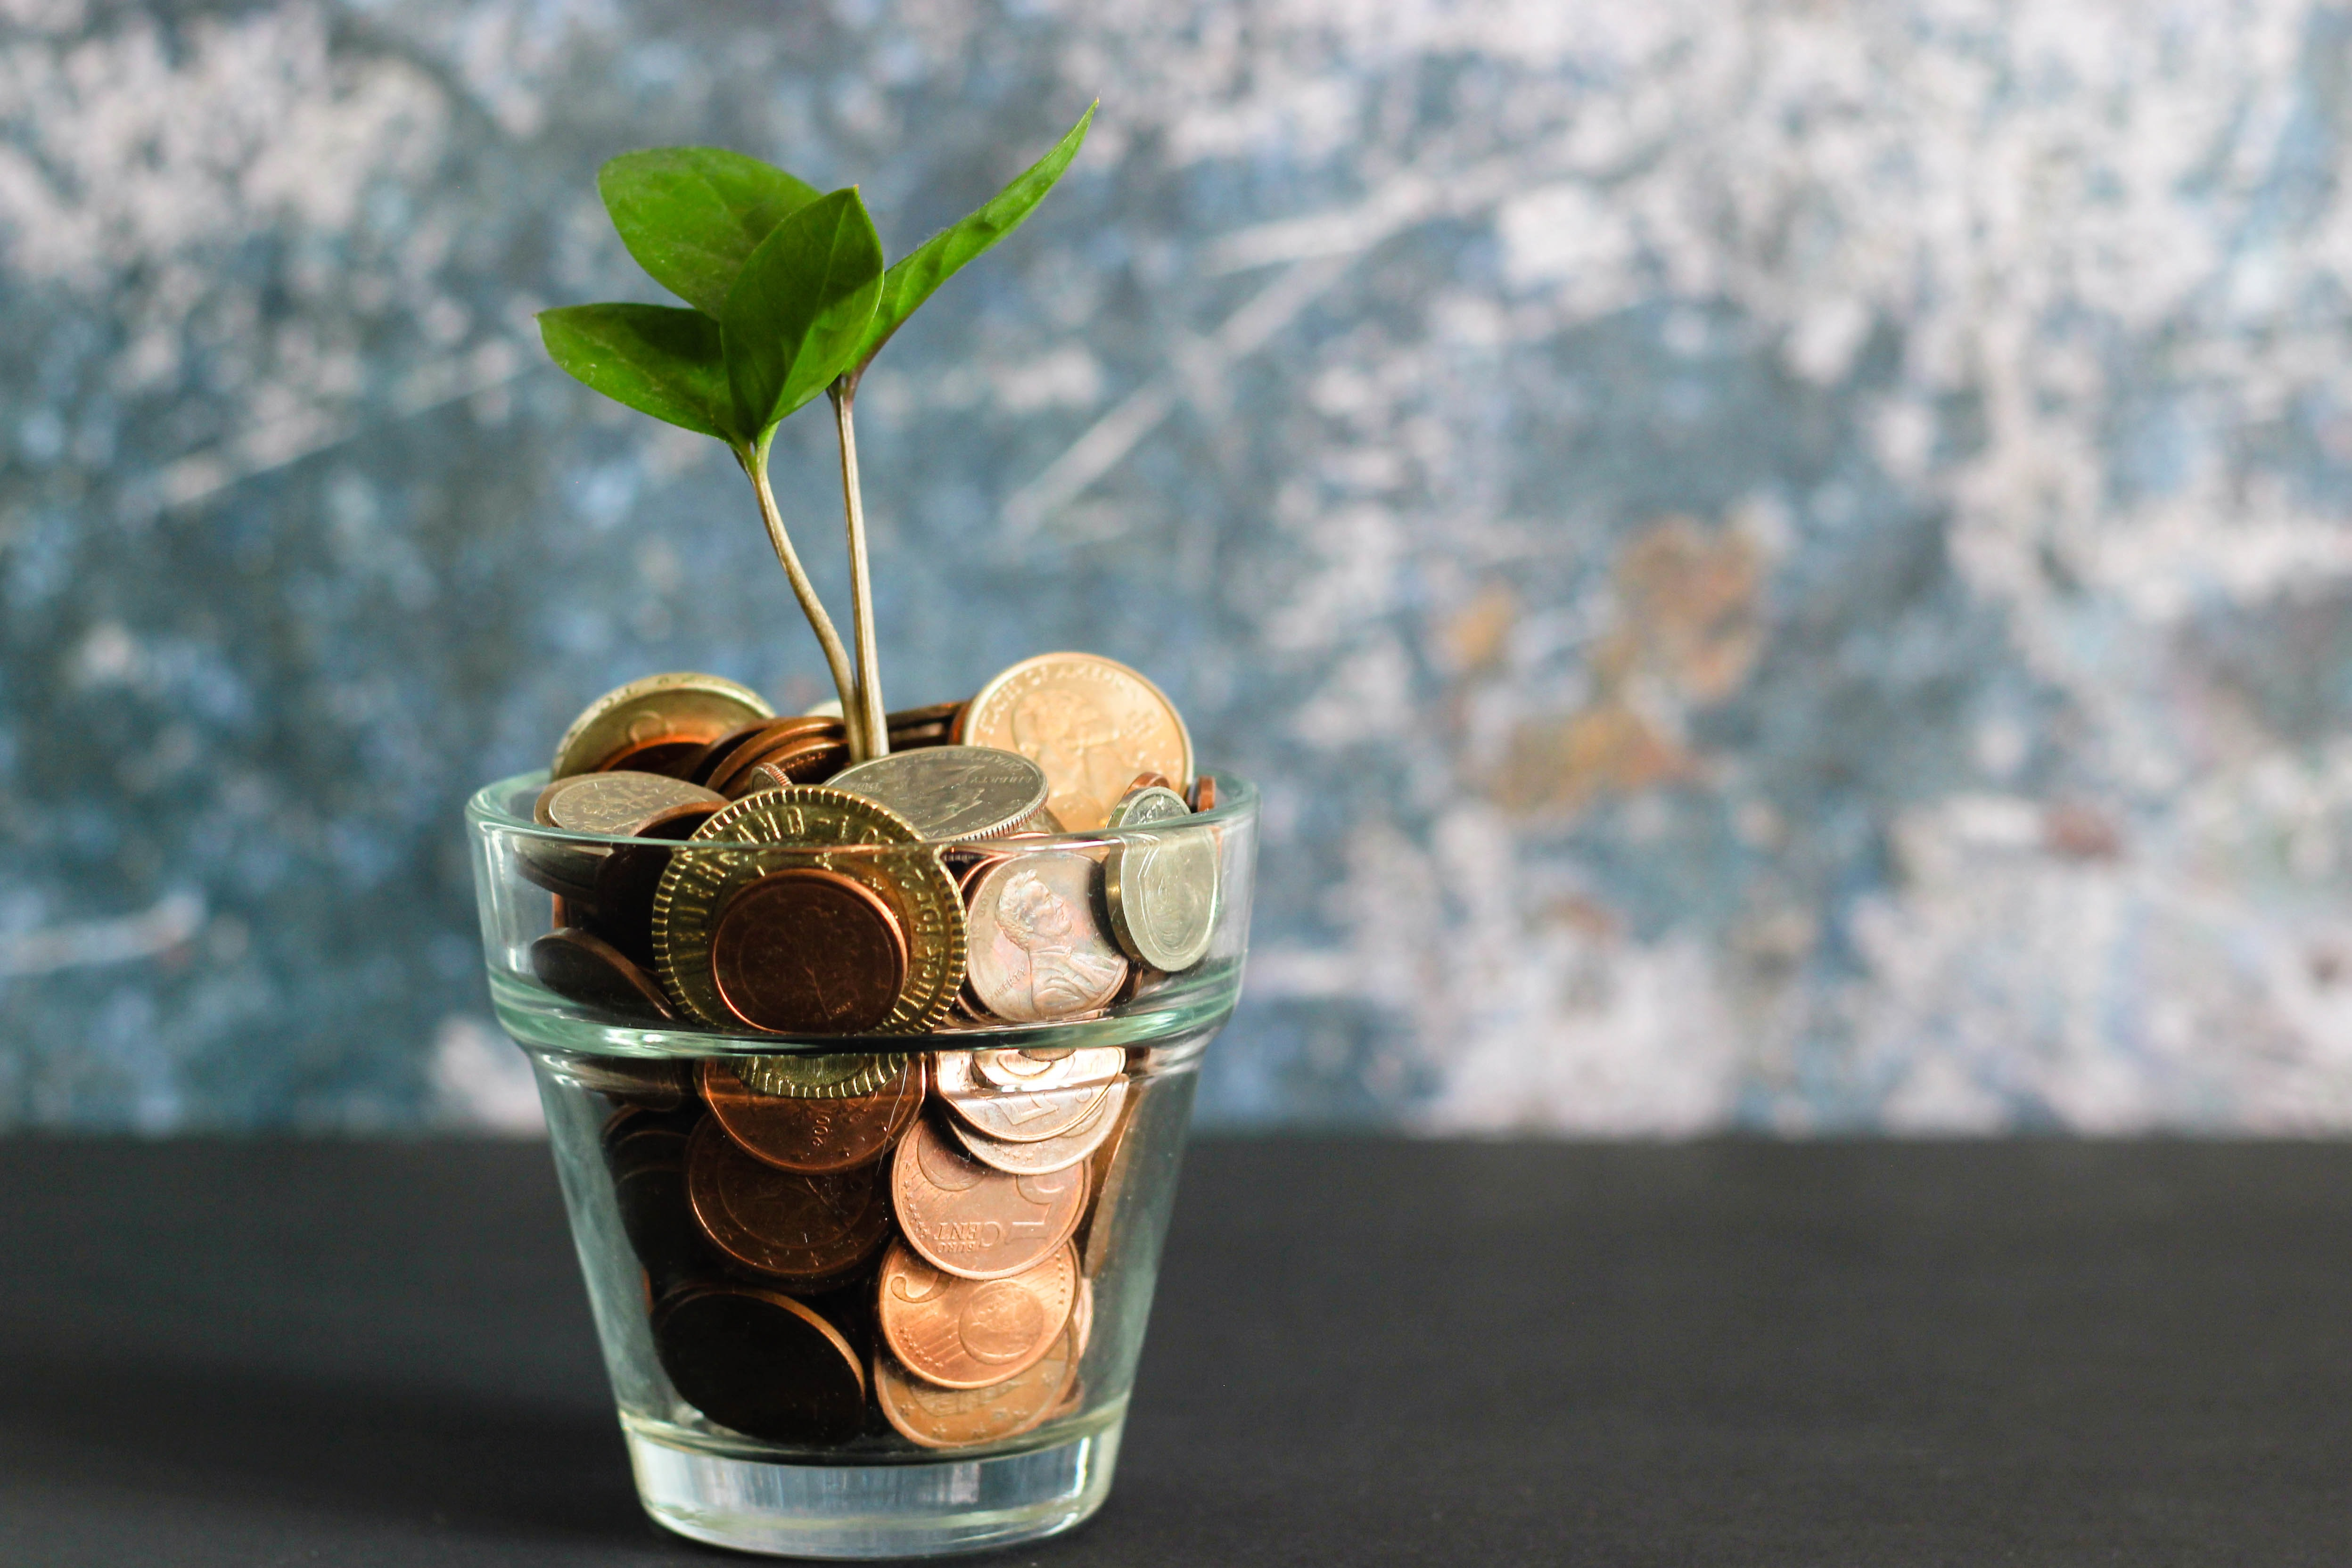 Small green plant growing out of a glass full of bronze and copper coins